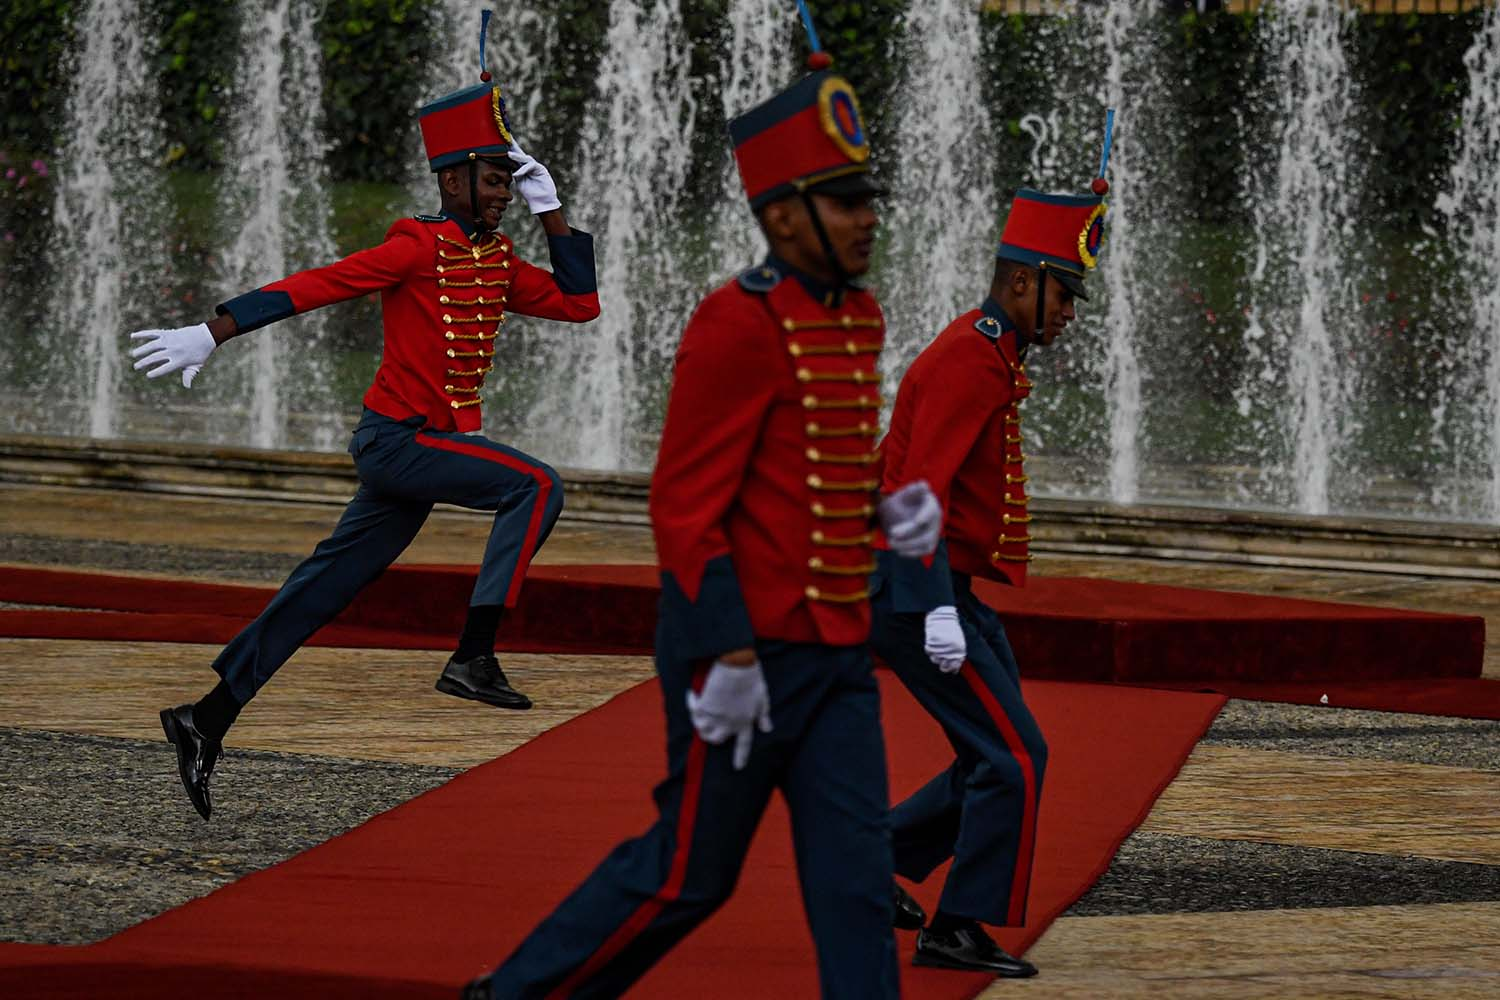 Members of the presidential honor guard walk outside Narino presidential palace before the visit by Panama's President Laurentino Cortizo in Bogota on Nov. 13. JUAN BARRETO/AFP via Getty Images